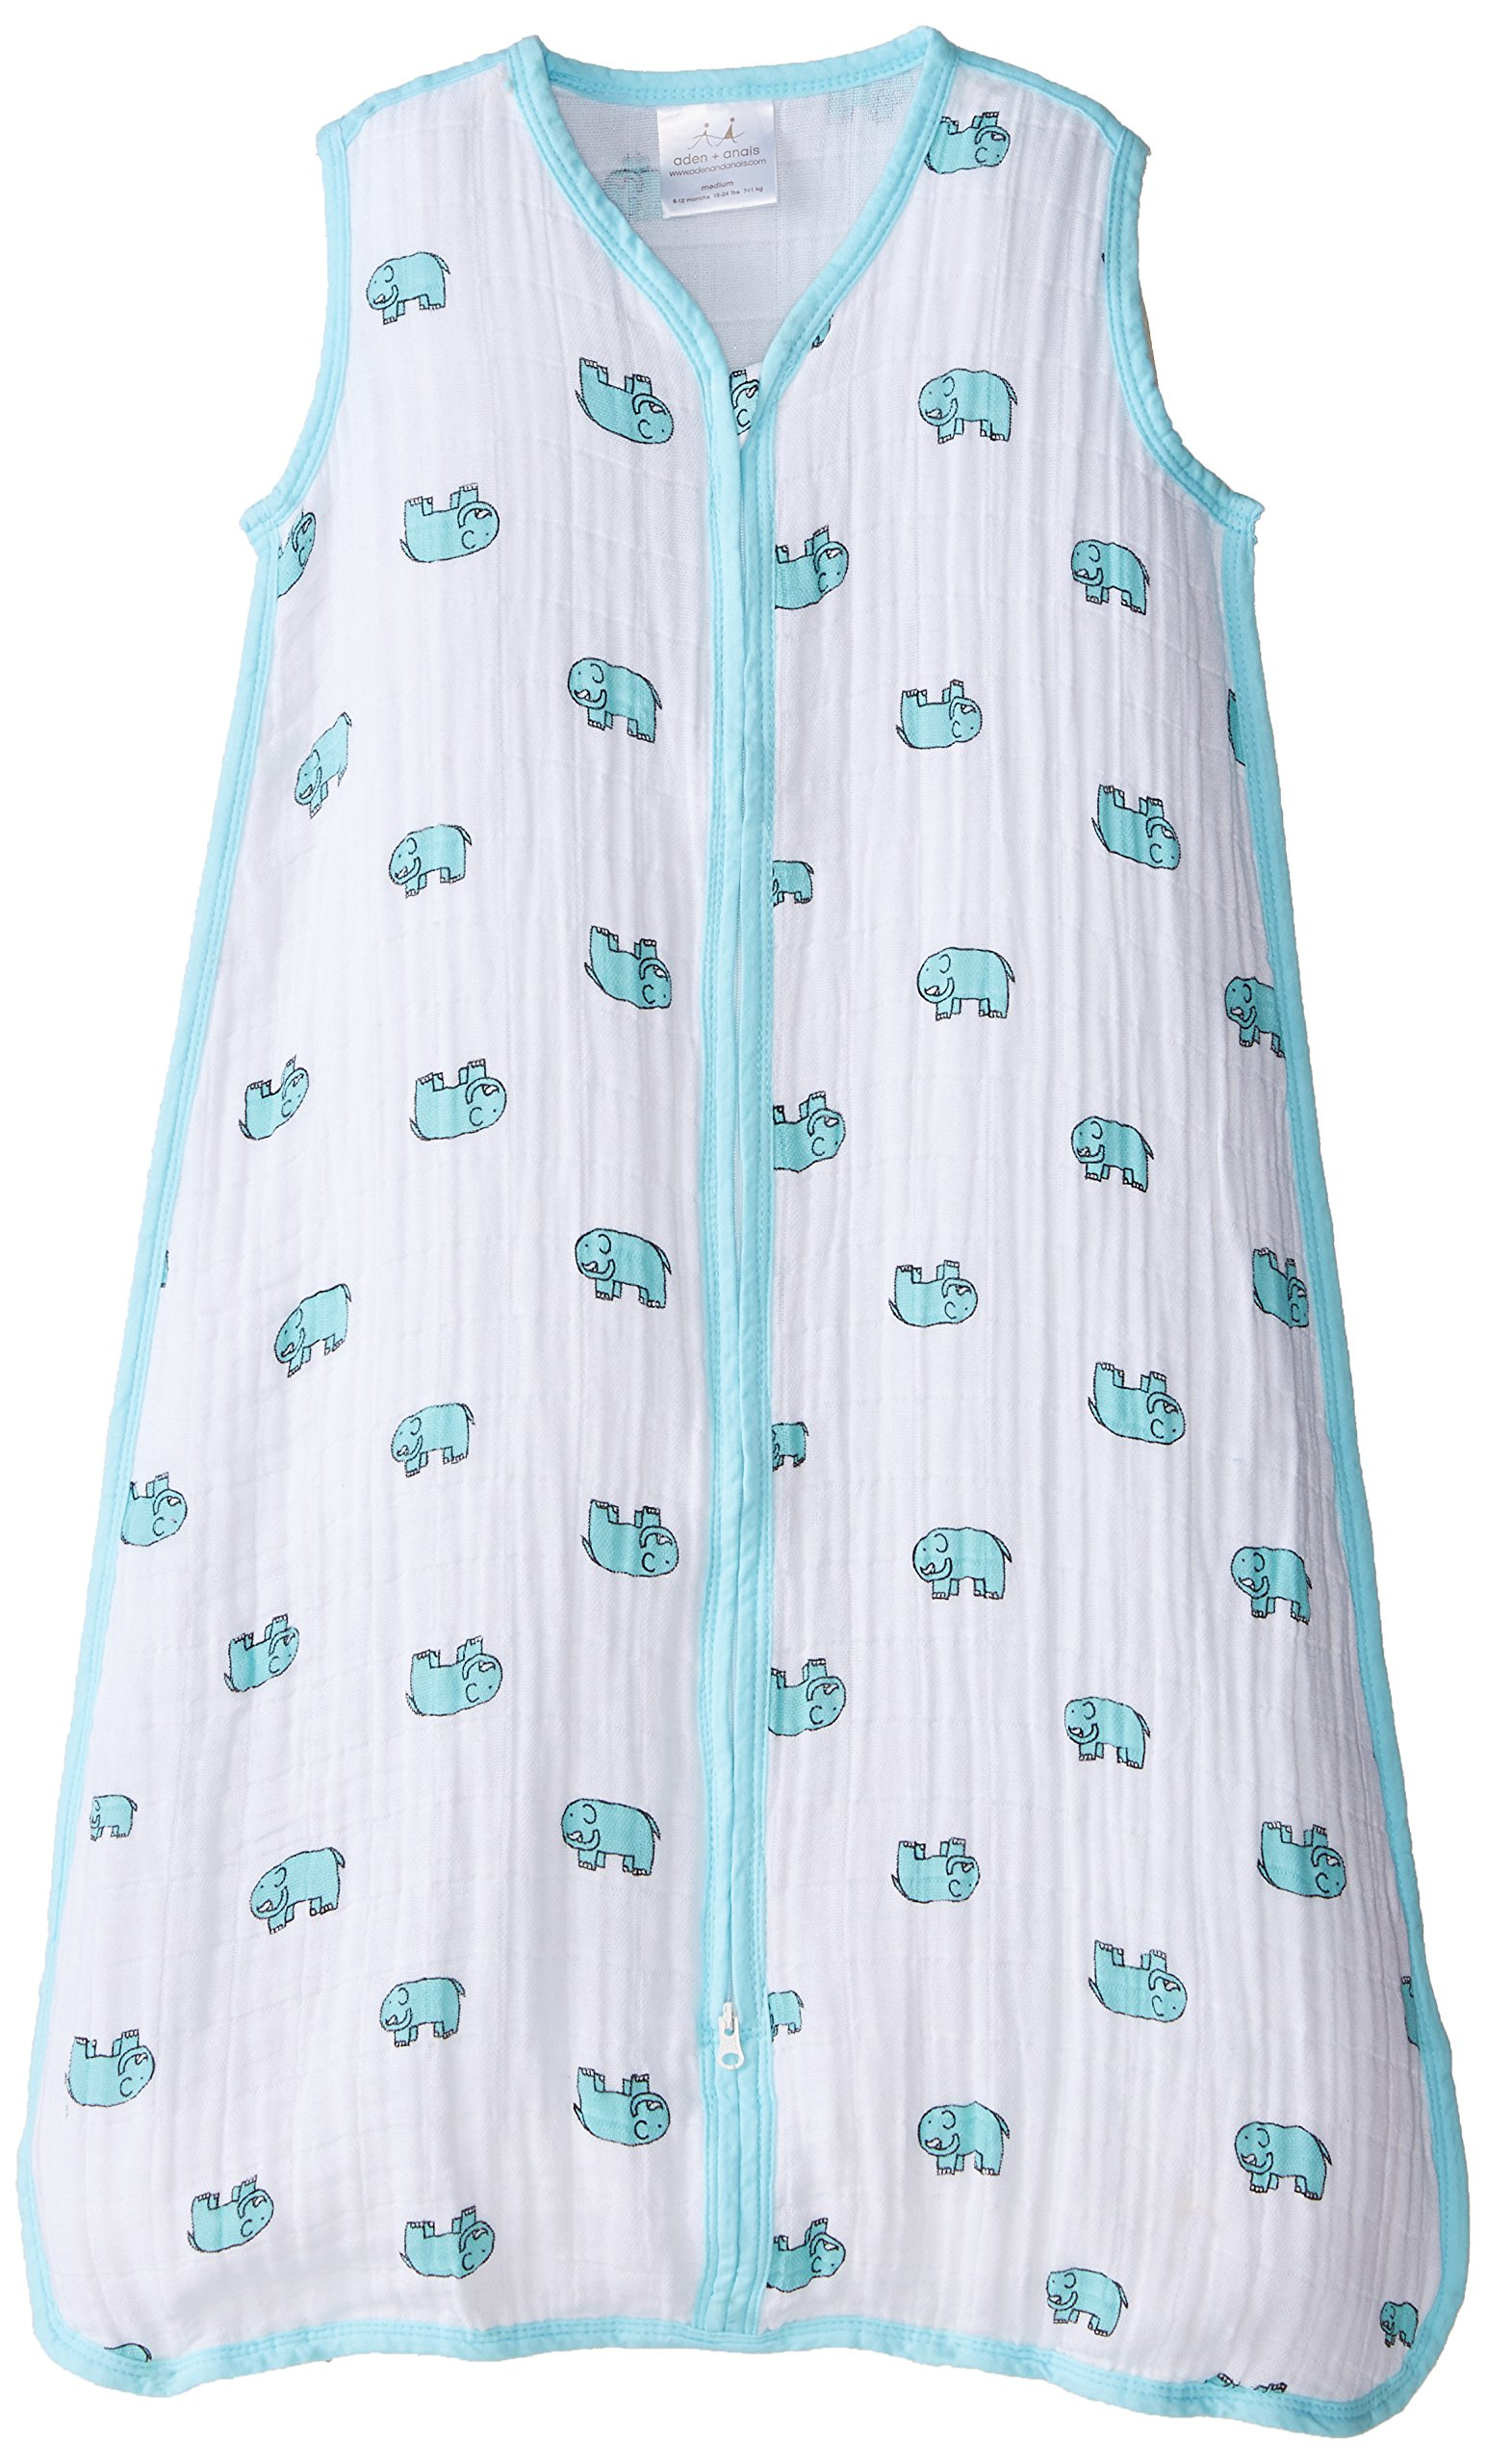 aden + anais Sleeping Bag, Jungle Jam- Elephant, M